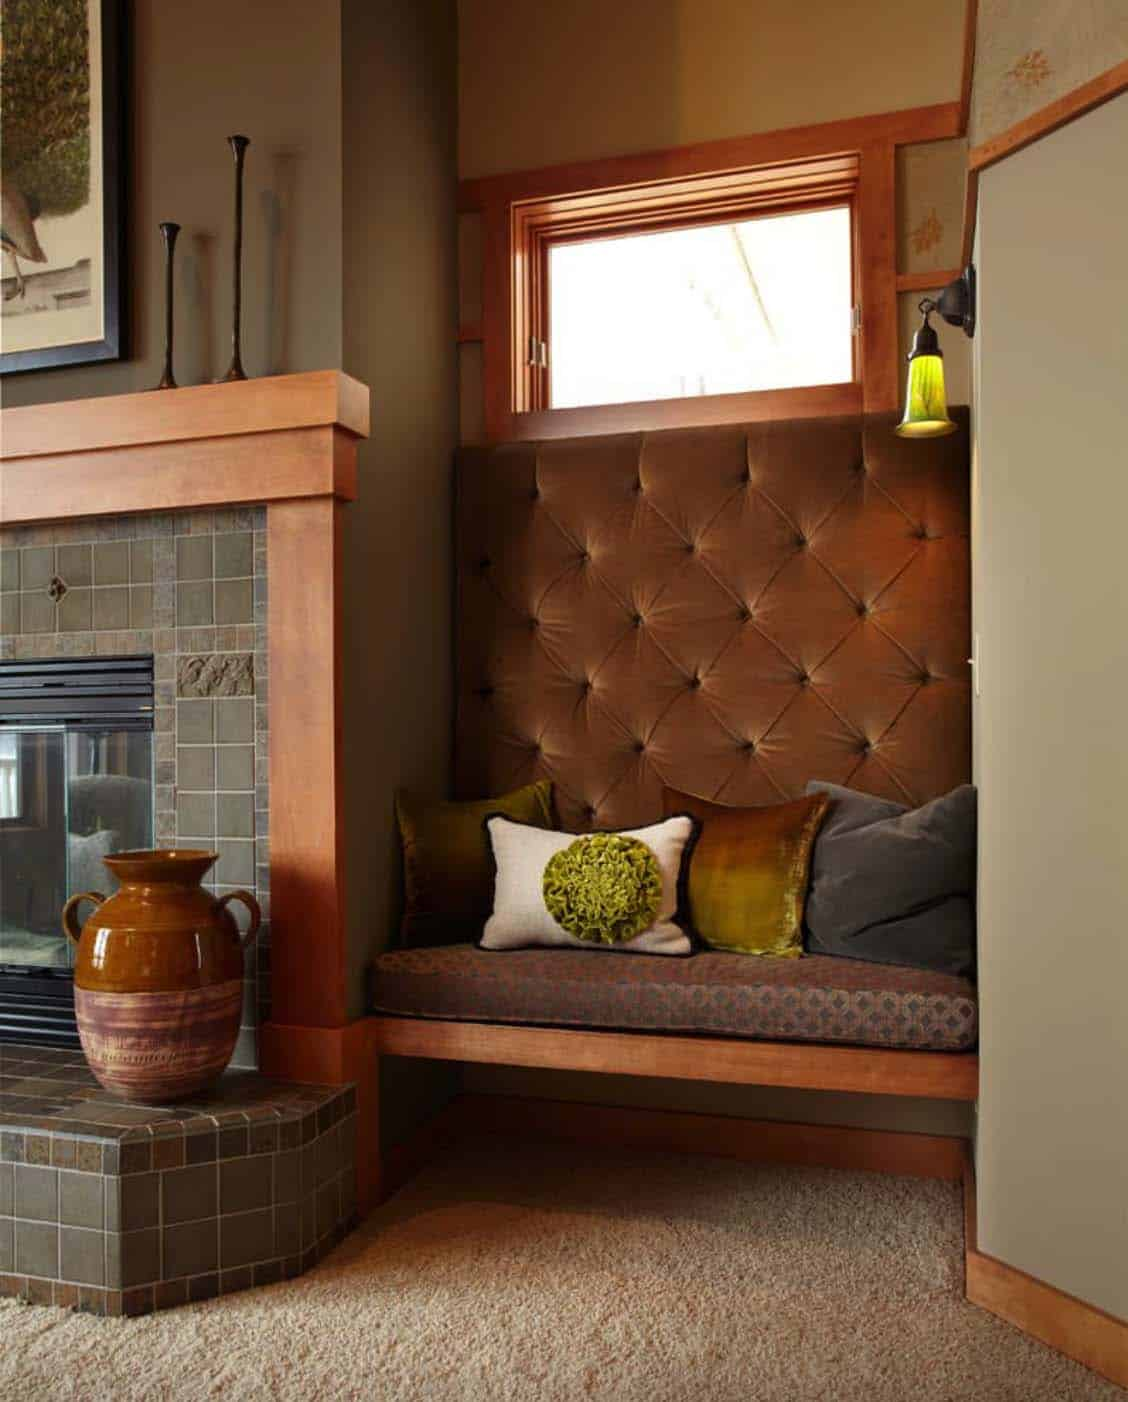 Fireplace Benches New 28 Extremely Cozy Fireplace Reading Nooks for Curling Up In